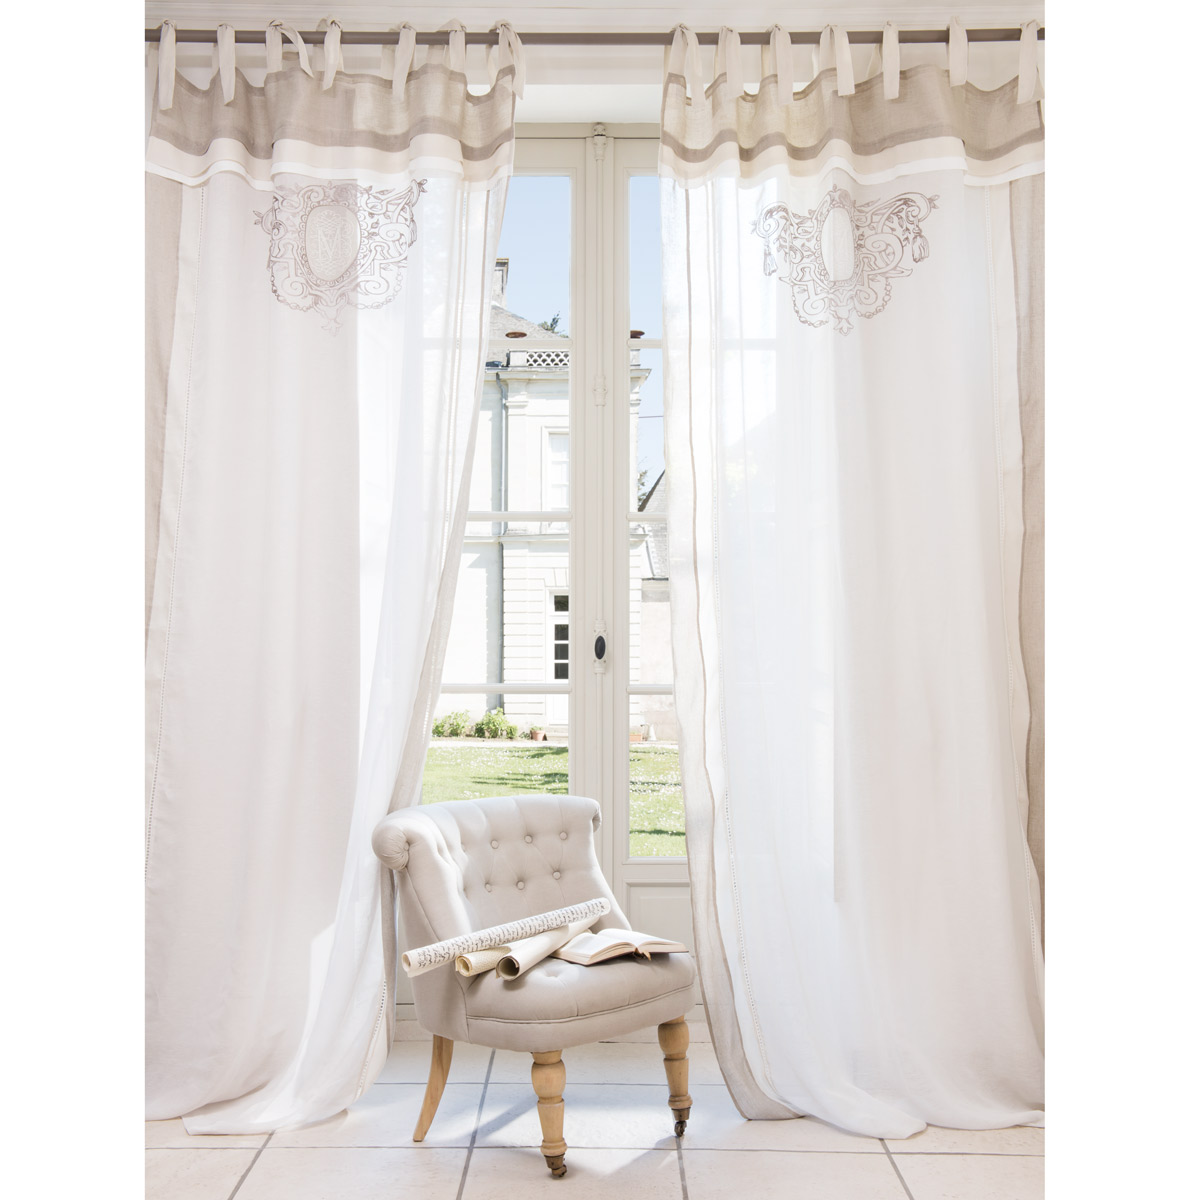 Tende a pacchetto shabby chic tg45 regardsdefemmes for Casa classica chic